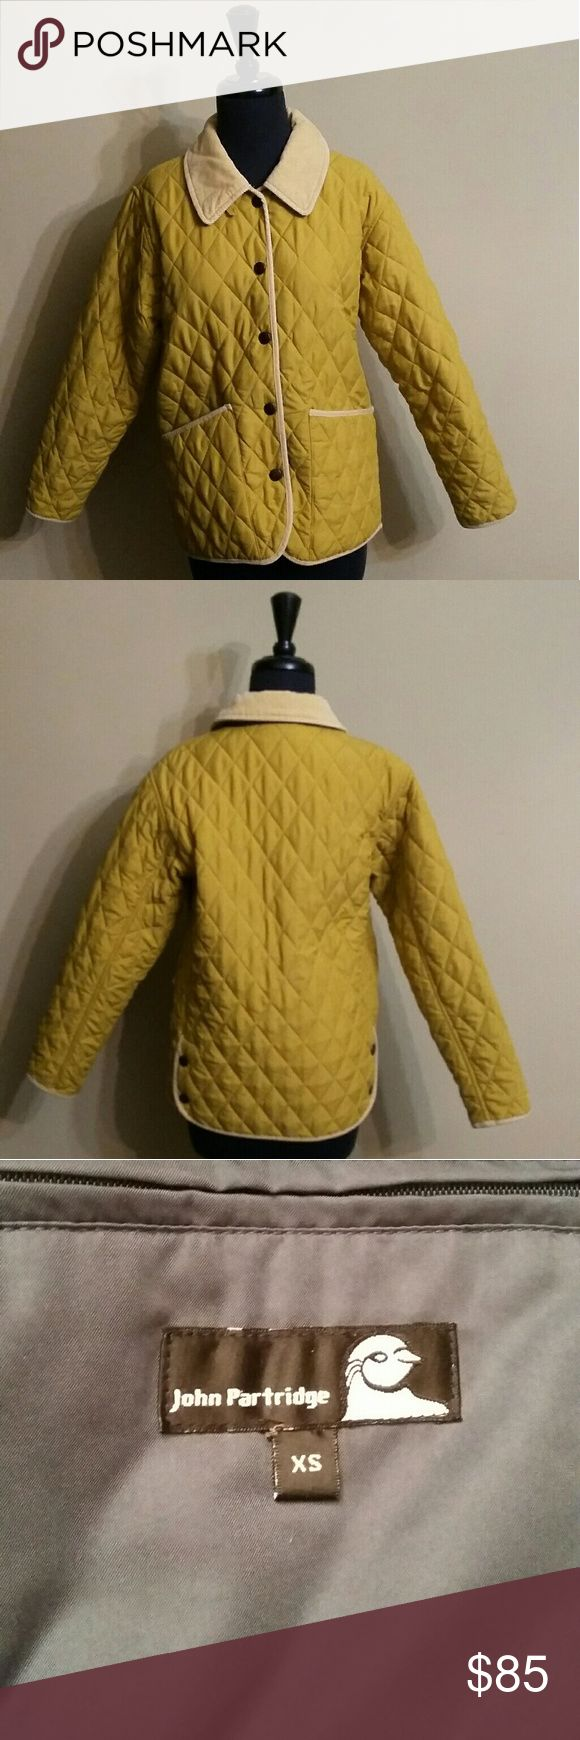 John Partridge Jacket Mustard colored John Partridge quilted jacket. Is a great almost new condition.  It's one hundred percent polyester and washable. John Partridge Jackets & Coats Puffers